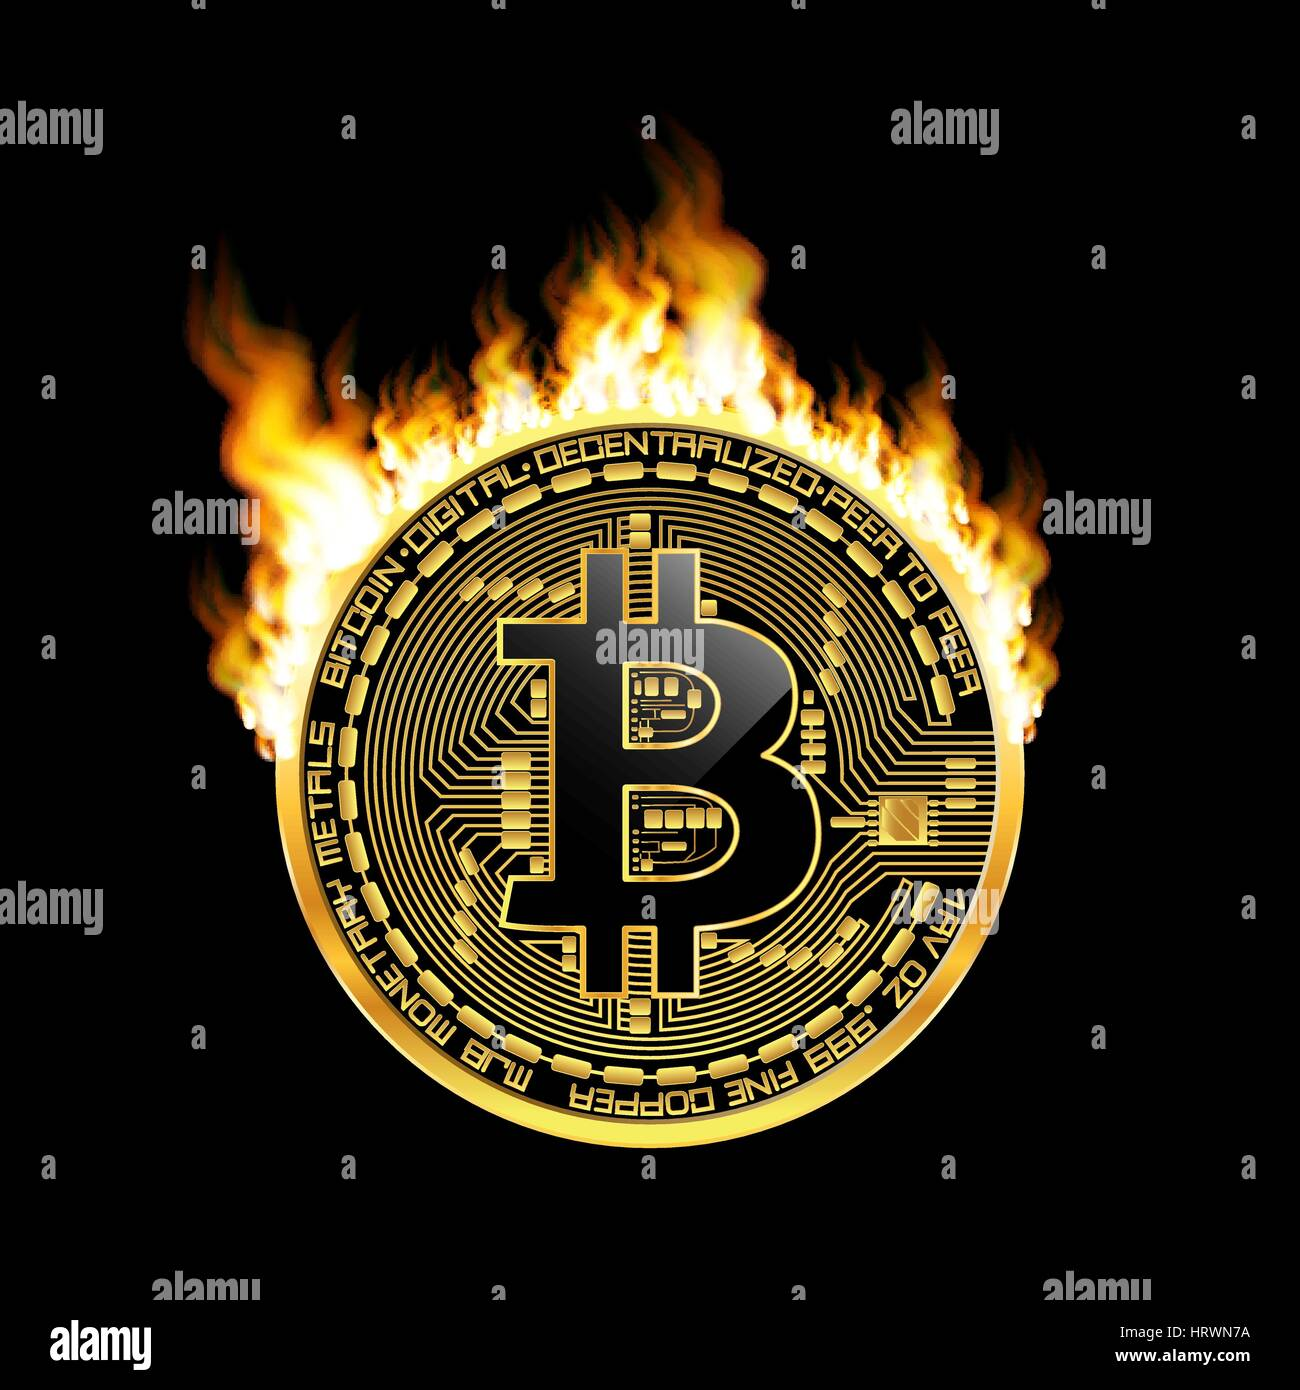 Stock market symbol for bitcoin segwit2x countdown the search for peak bitcoin continues as kfc canada briefly accepts etf market too small to cause the next market the stock symbol stockchartric buycottarizona Images